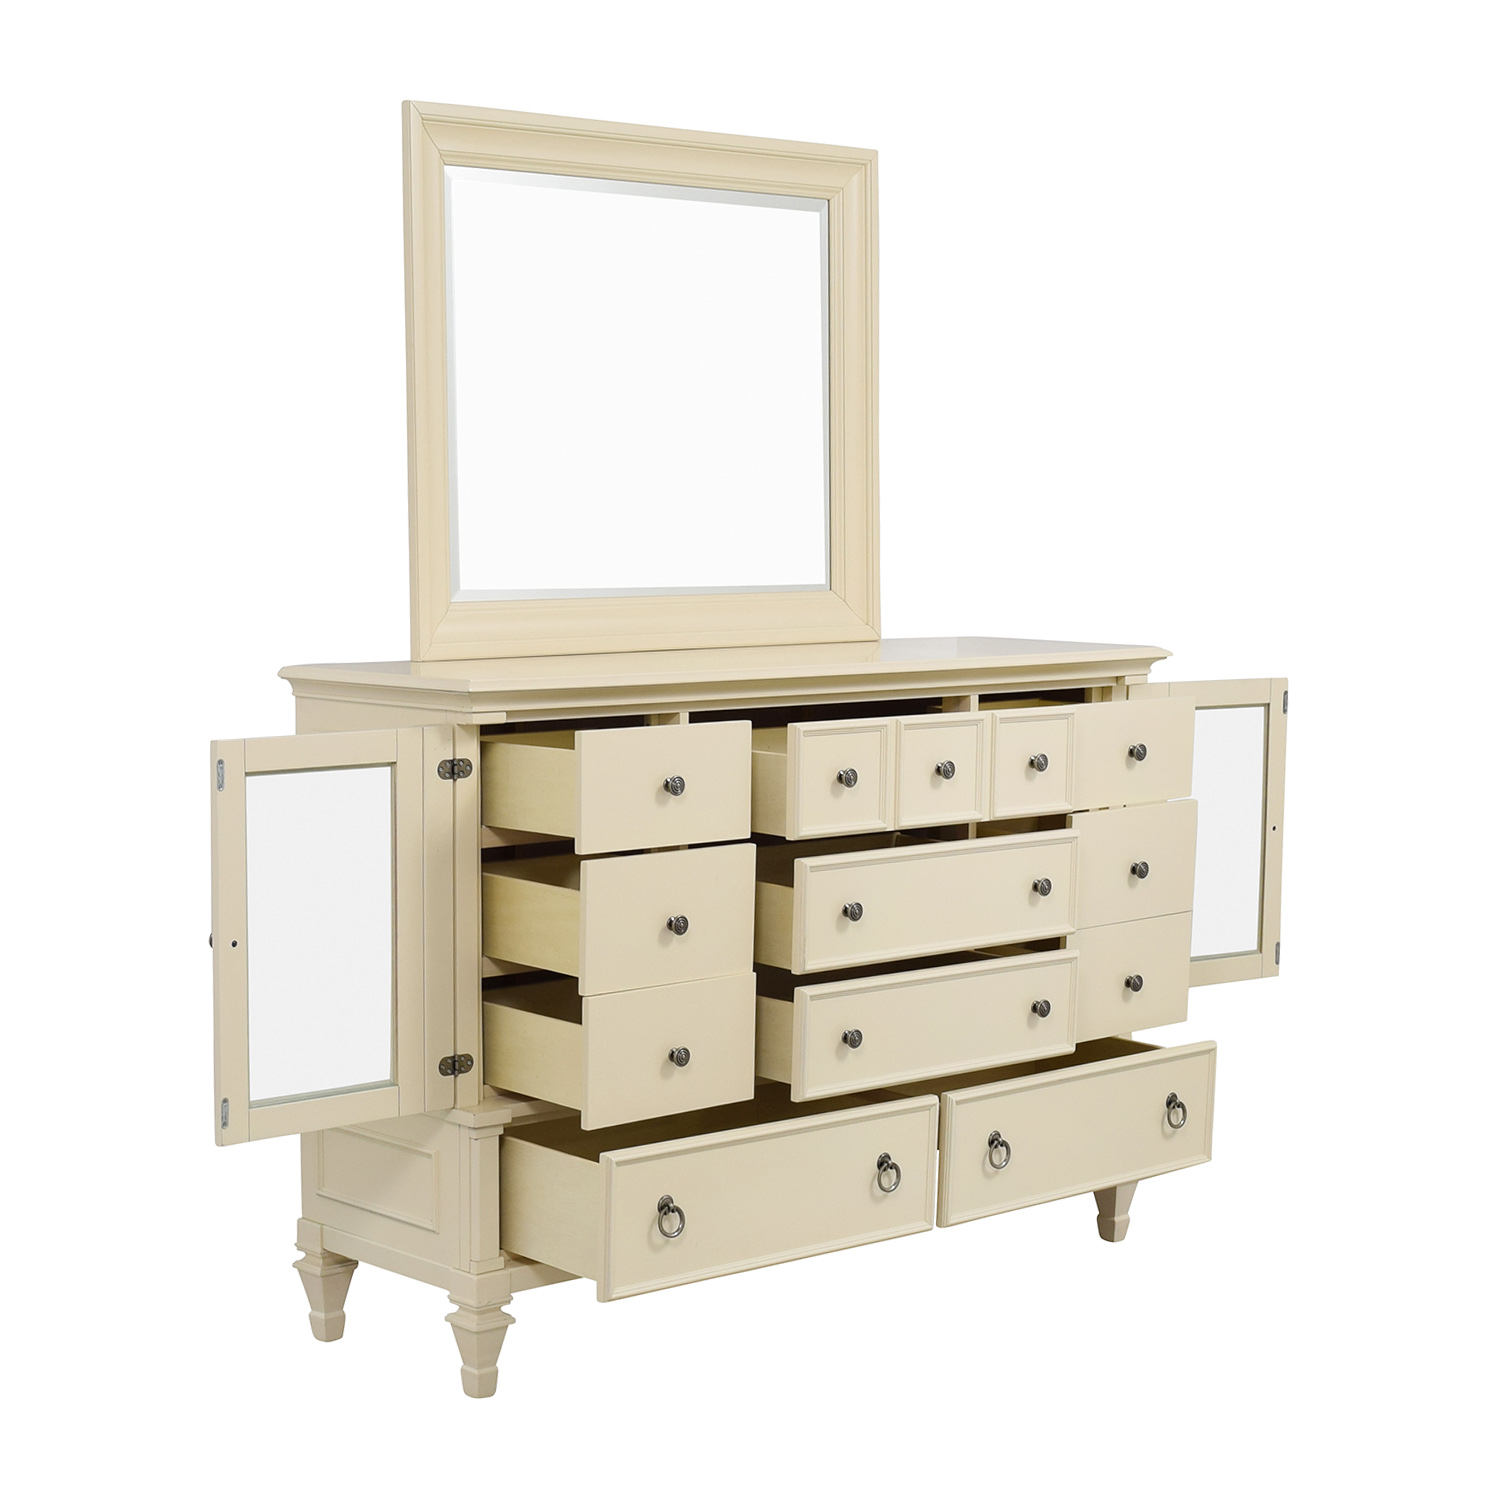 68 Off Raymour And Flanigan Raymour Flanigan Somerset Bedroom Dresser With Mirror Storage